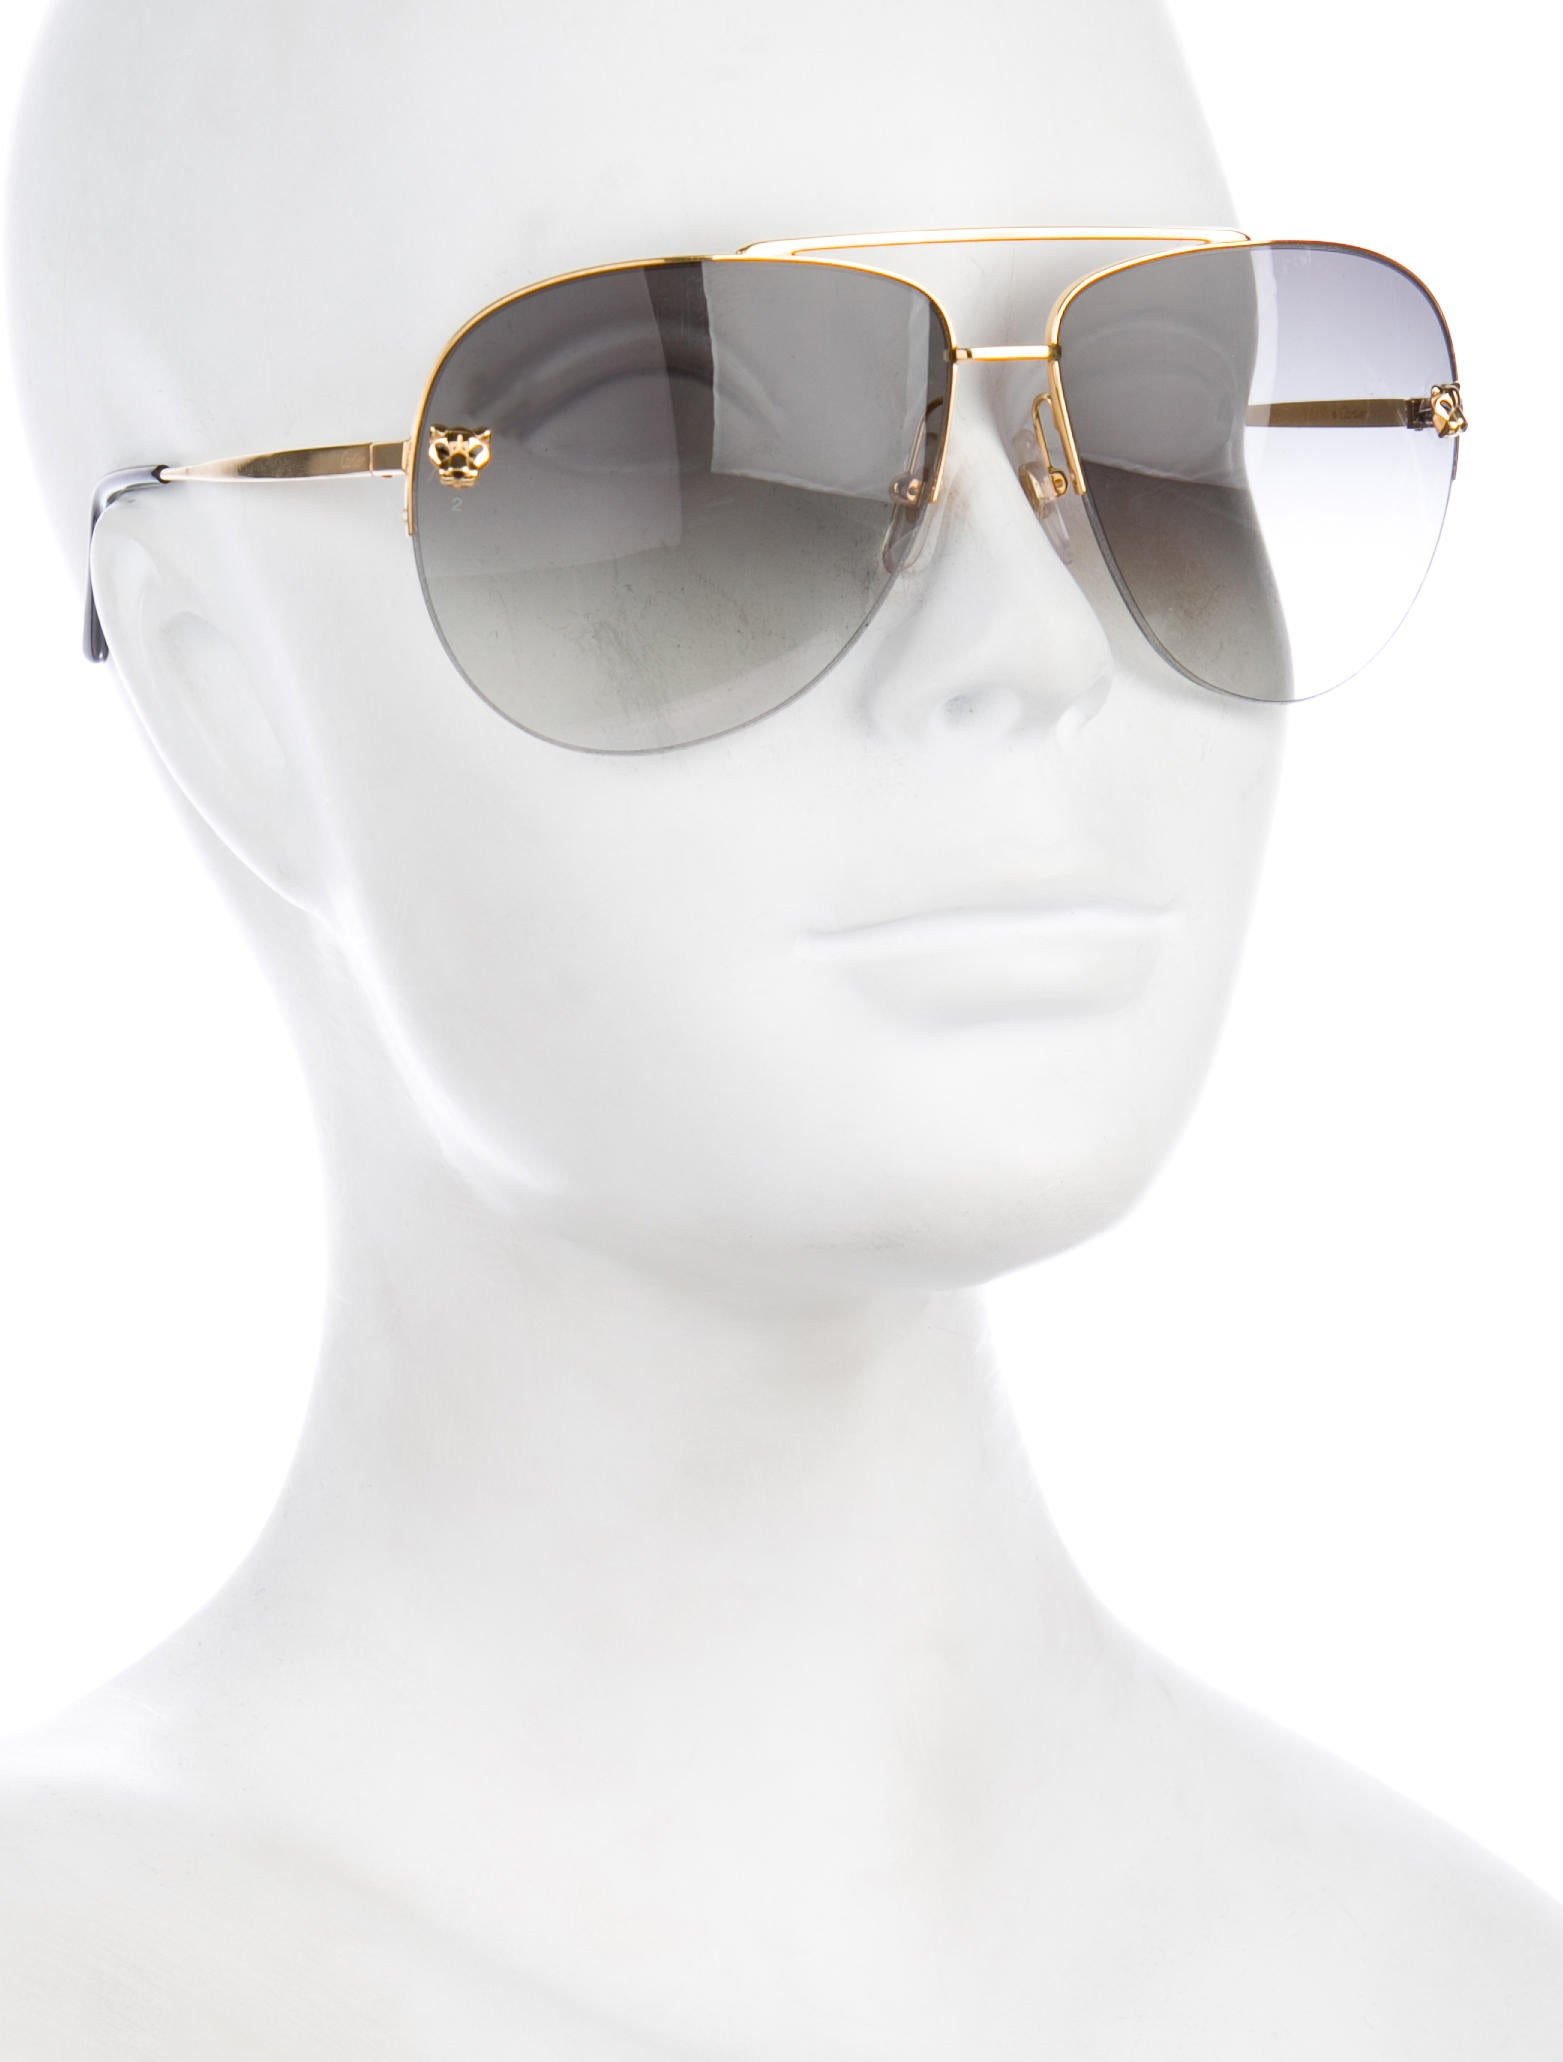 bb2cc099087 Cartier Sunglasses Frame Panthere - Bitterroot Public Library